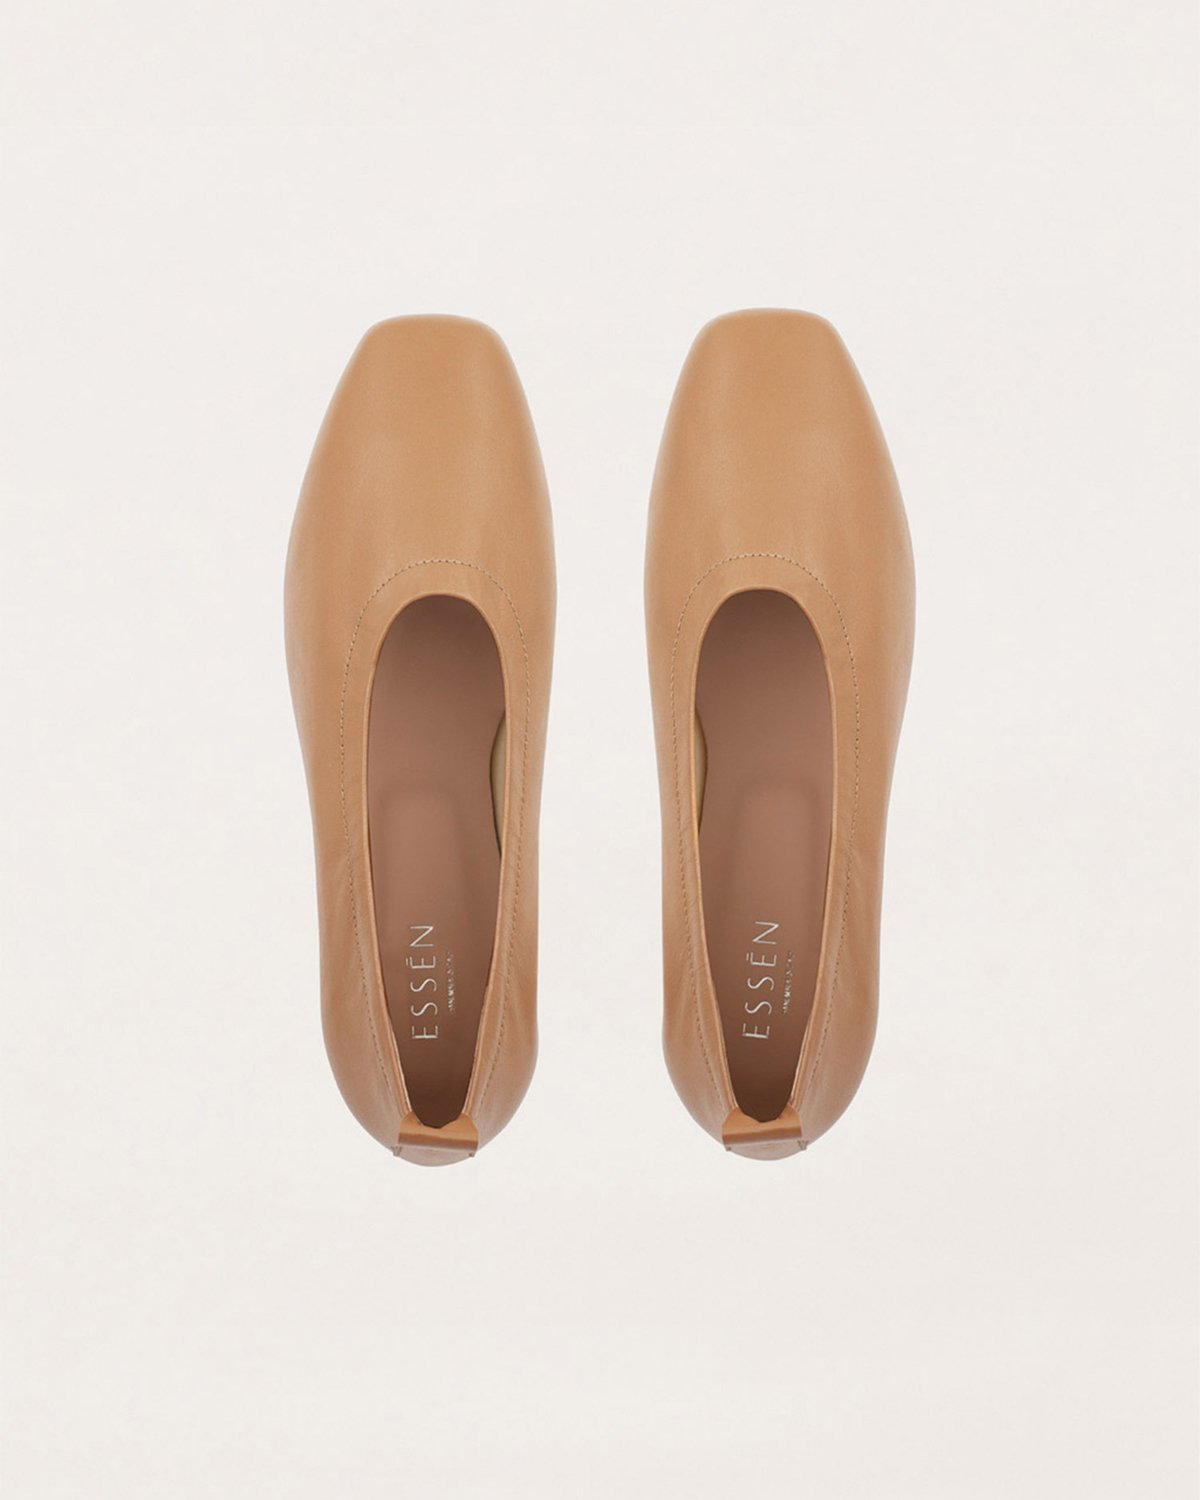 FOUNDATION TAN LEATHER FLATS